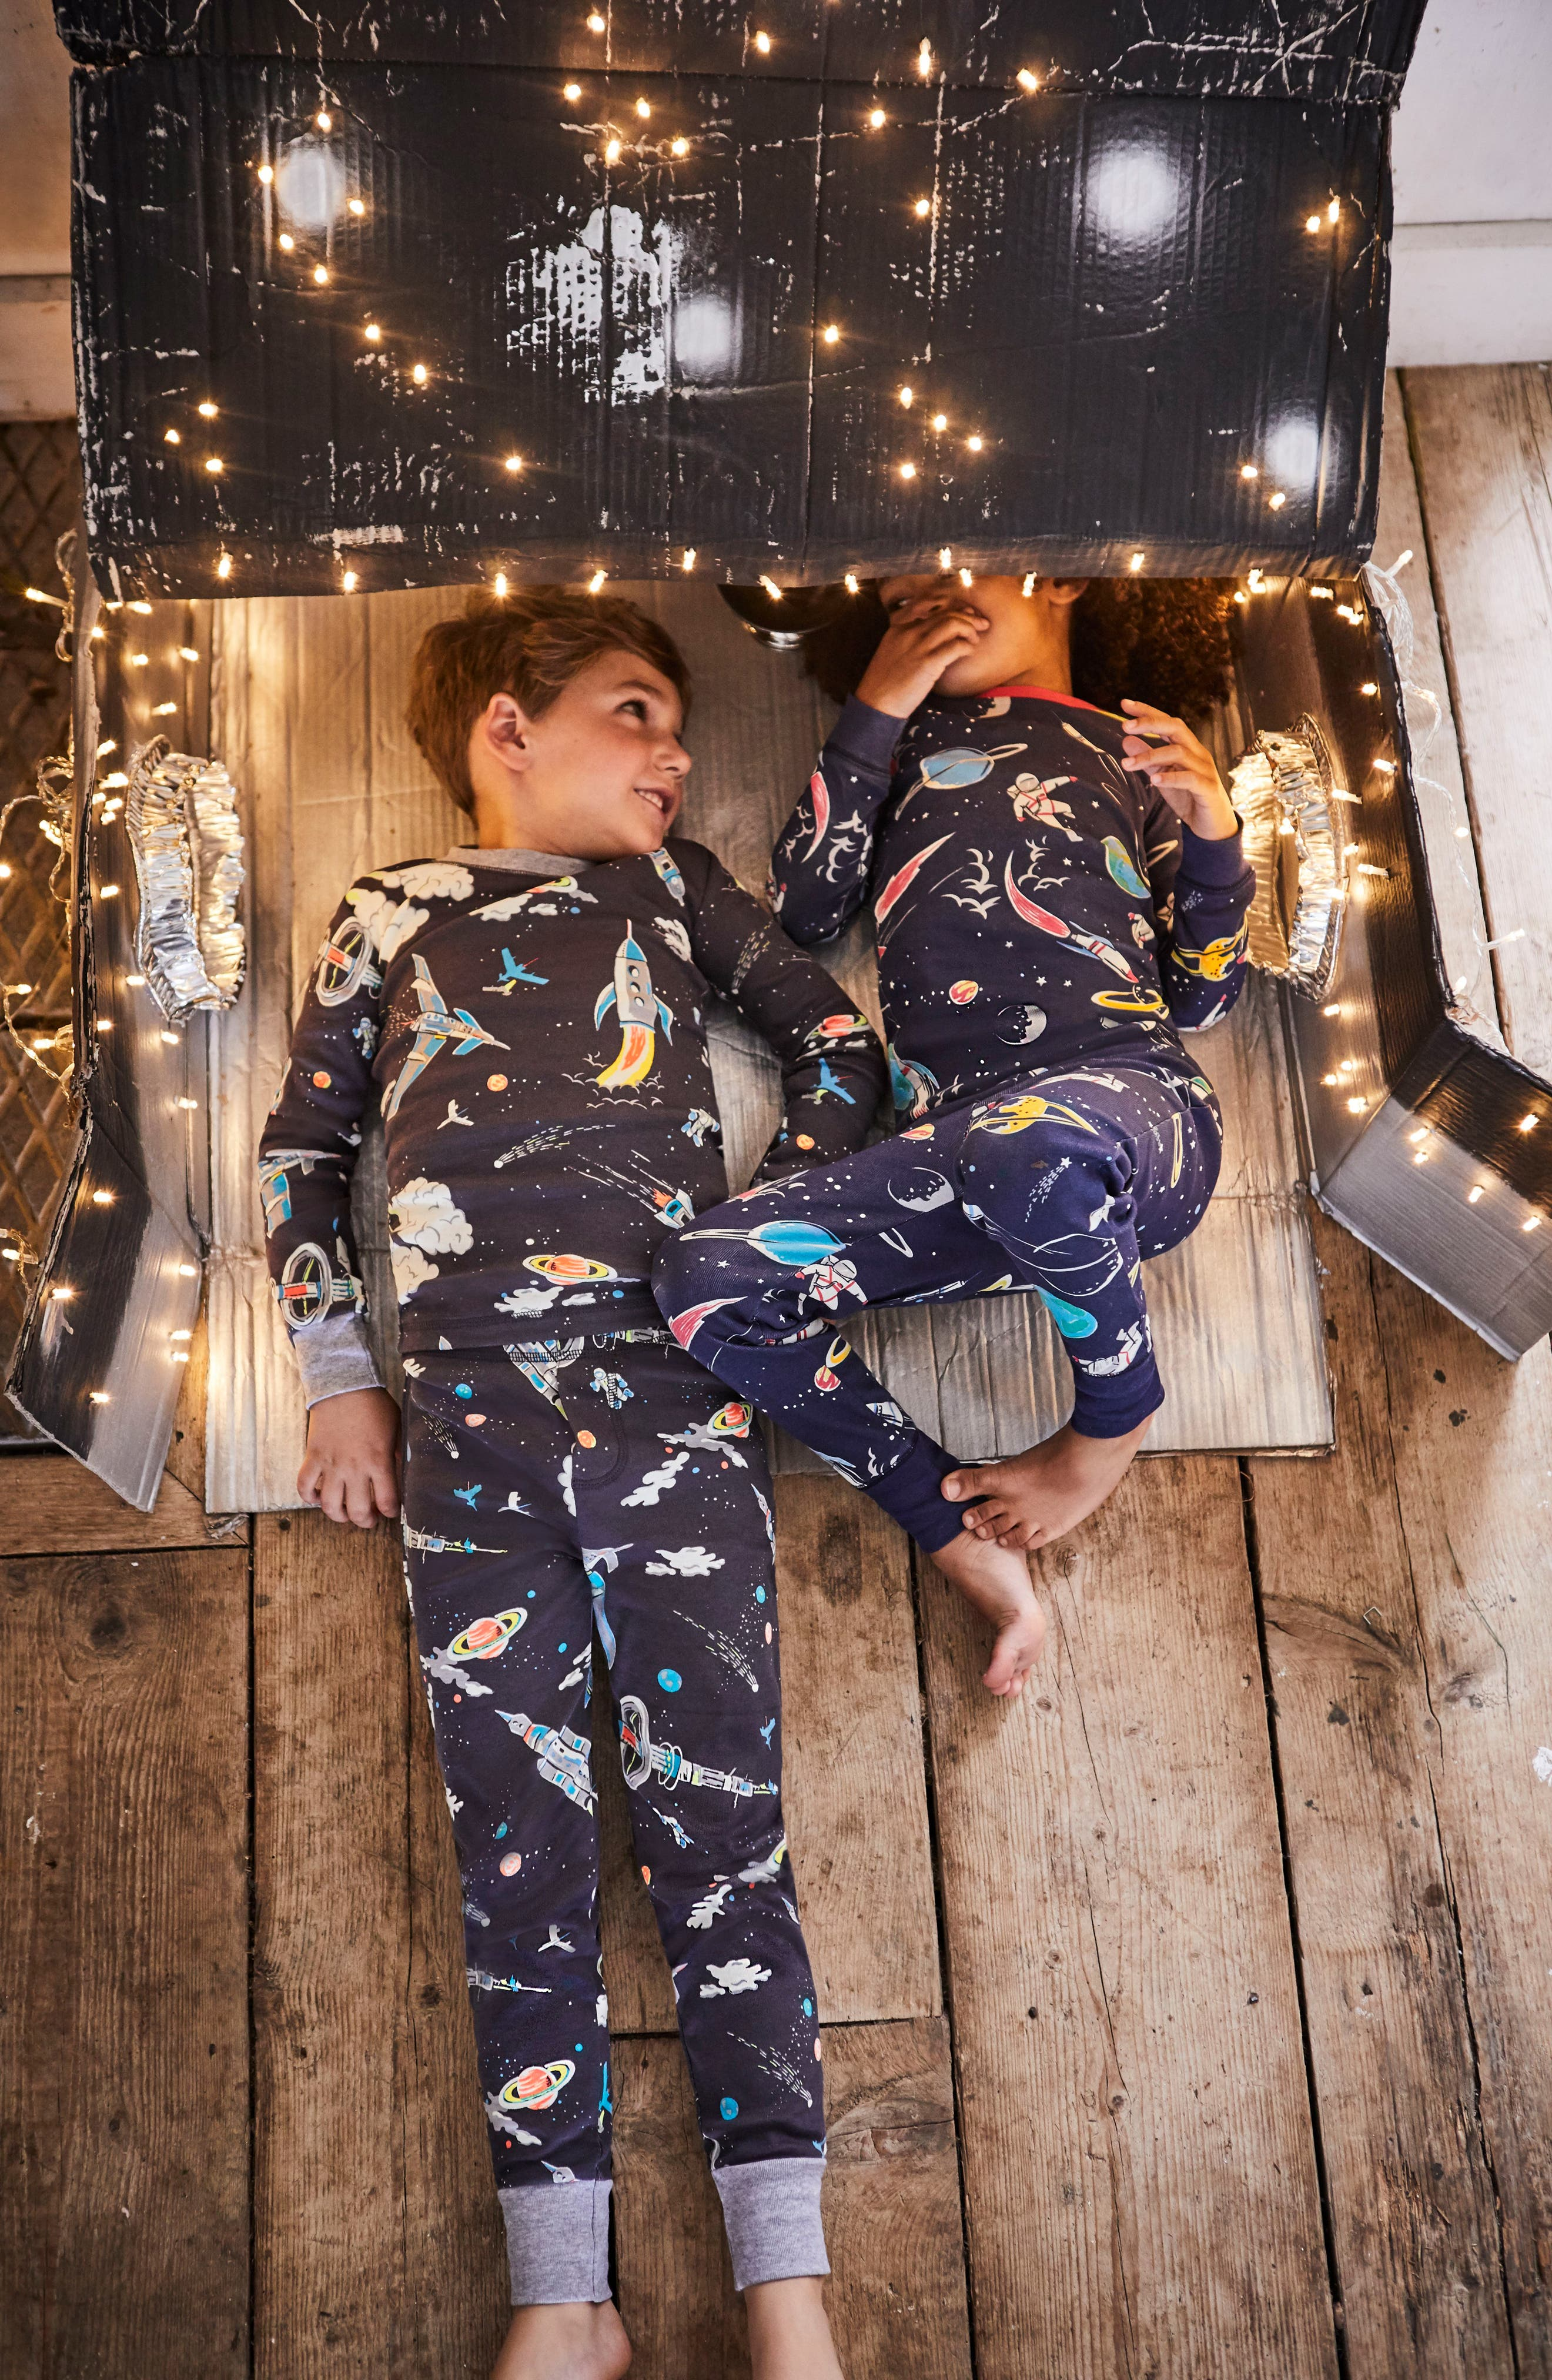 Glow in the Dark Fitted Two-Piece Pajamas,                             Alternate thumbnail 4, color,                             Asphalt Gray